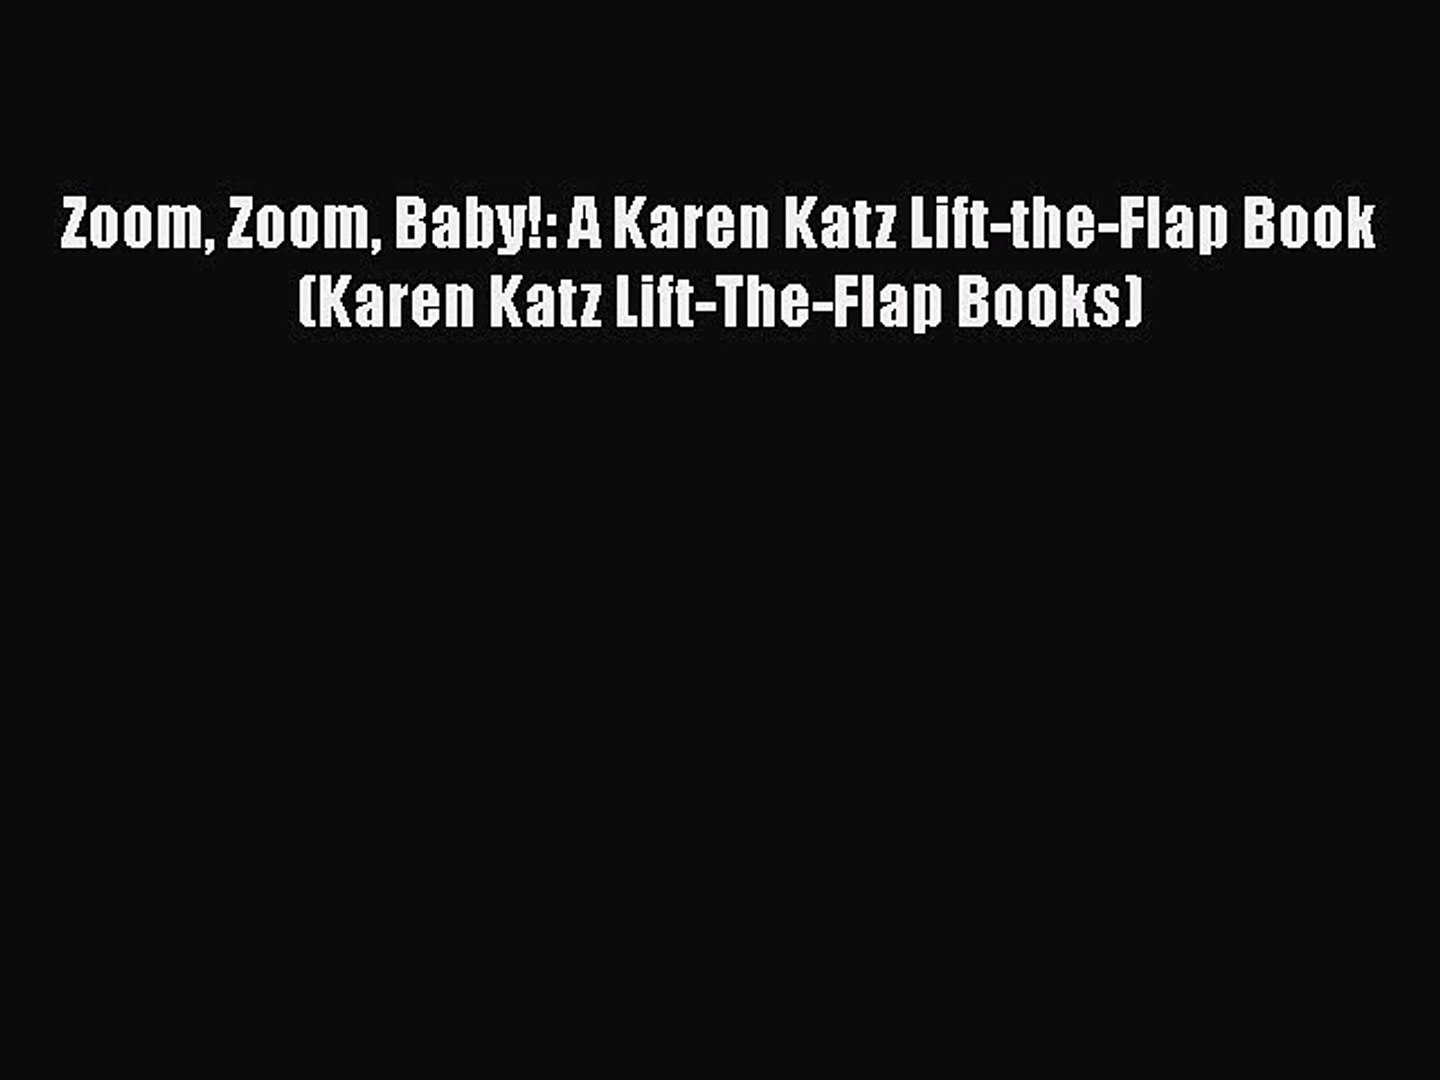 Download Zoom Zoom Baby!: A Karen Katz Lift-the-Flap Book (Karen Katz Lift-The-Flap Books)